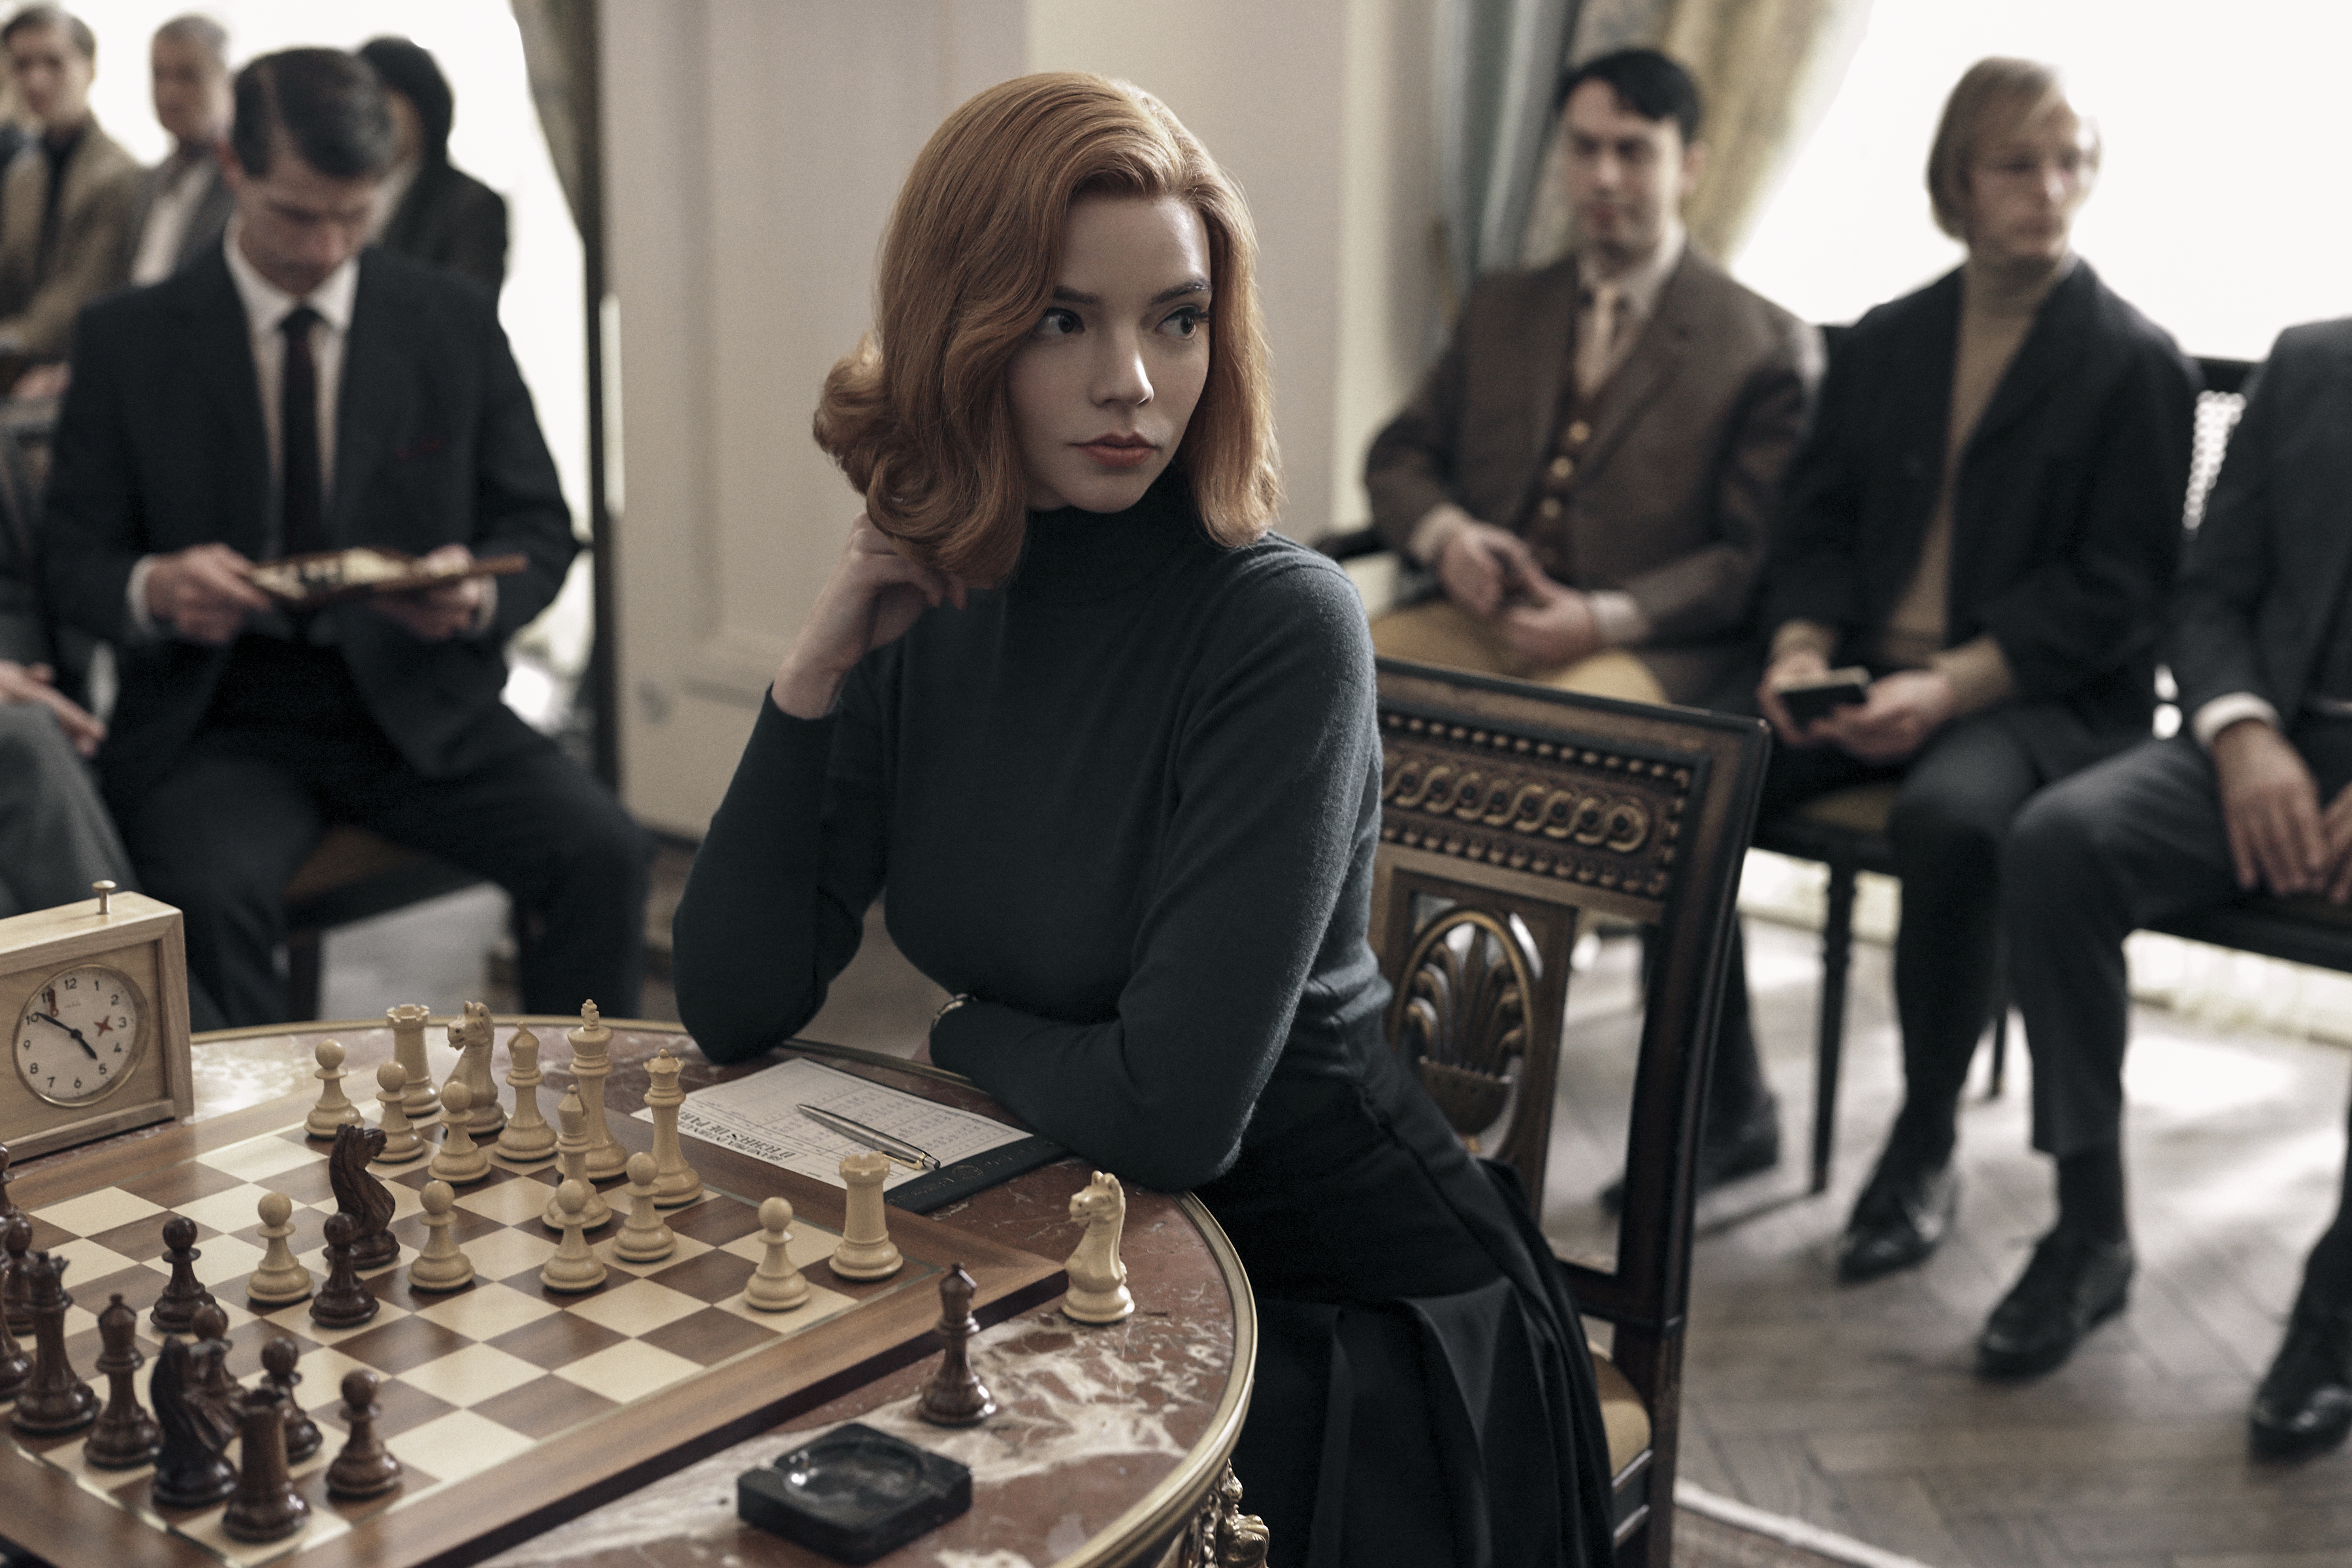 Queen's Gambit: girl sits at chess board